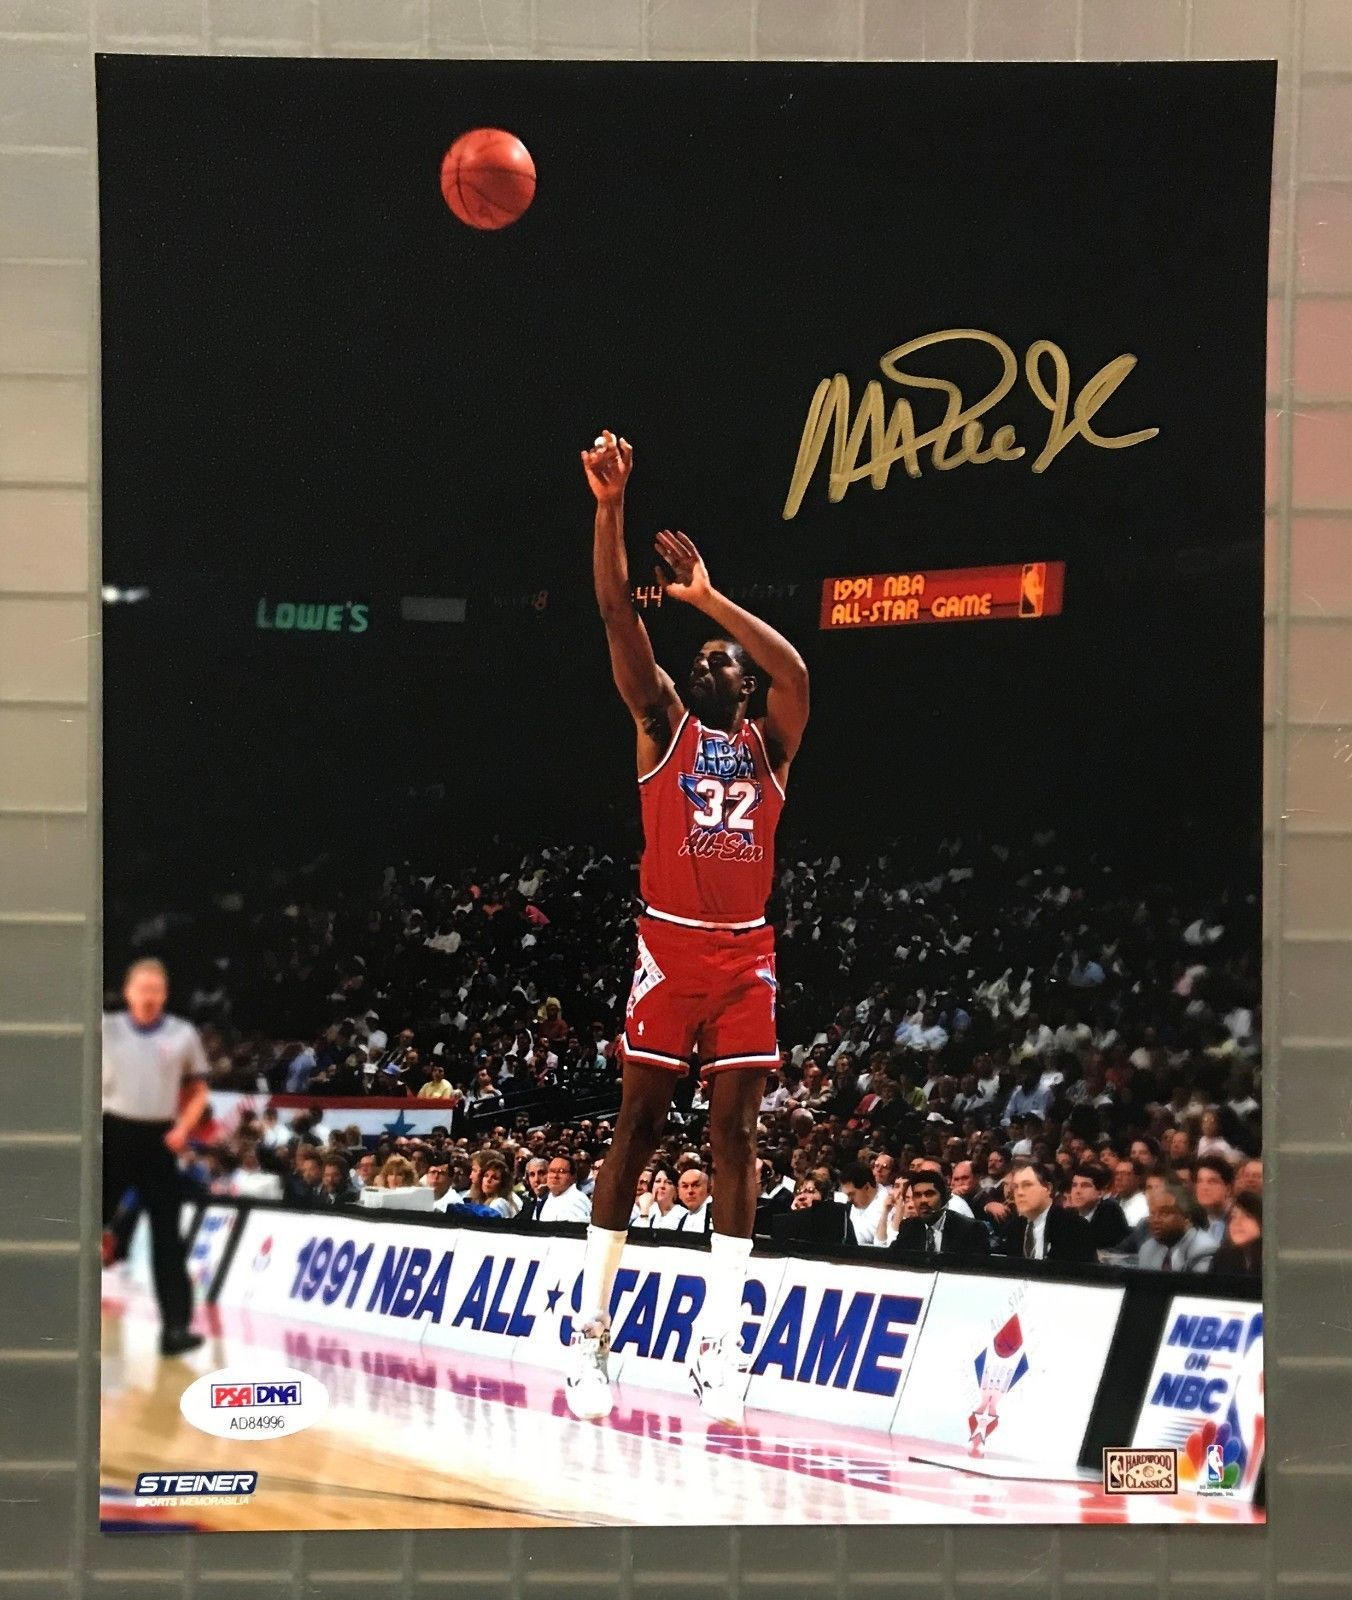 228e7b315d8 Magic Johnson Signed 8x10 All Star Game Photo Autographed PSA DNA Sticker  ONLY  Basketball